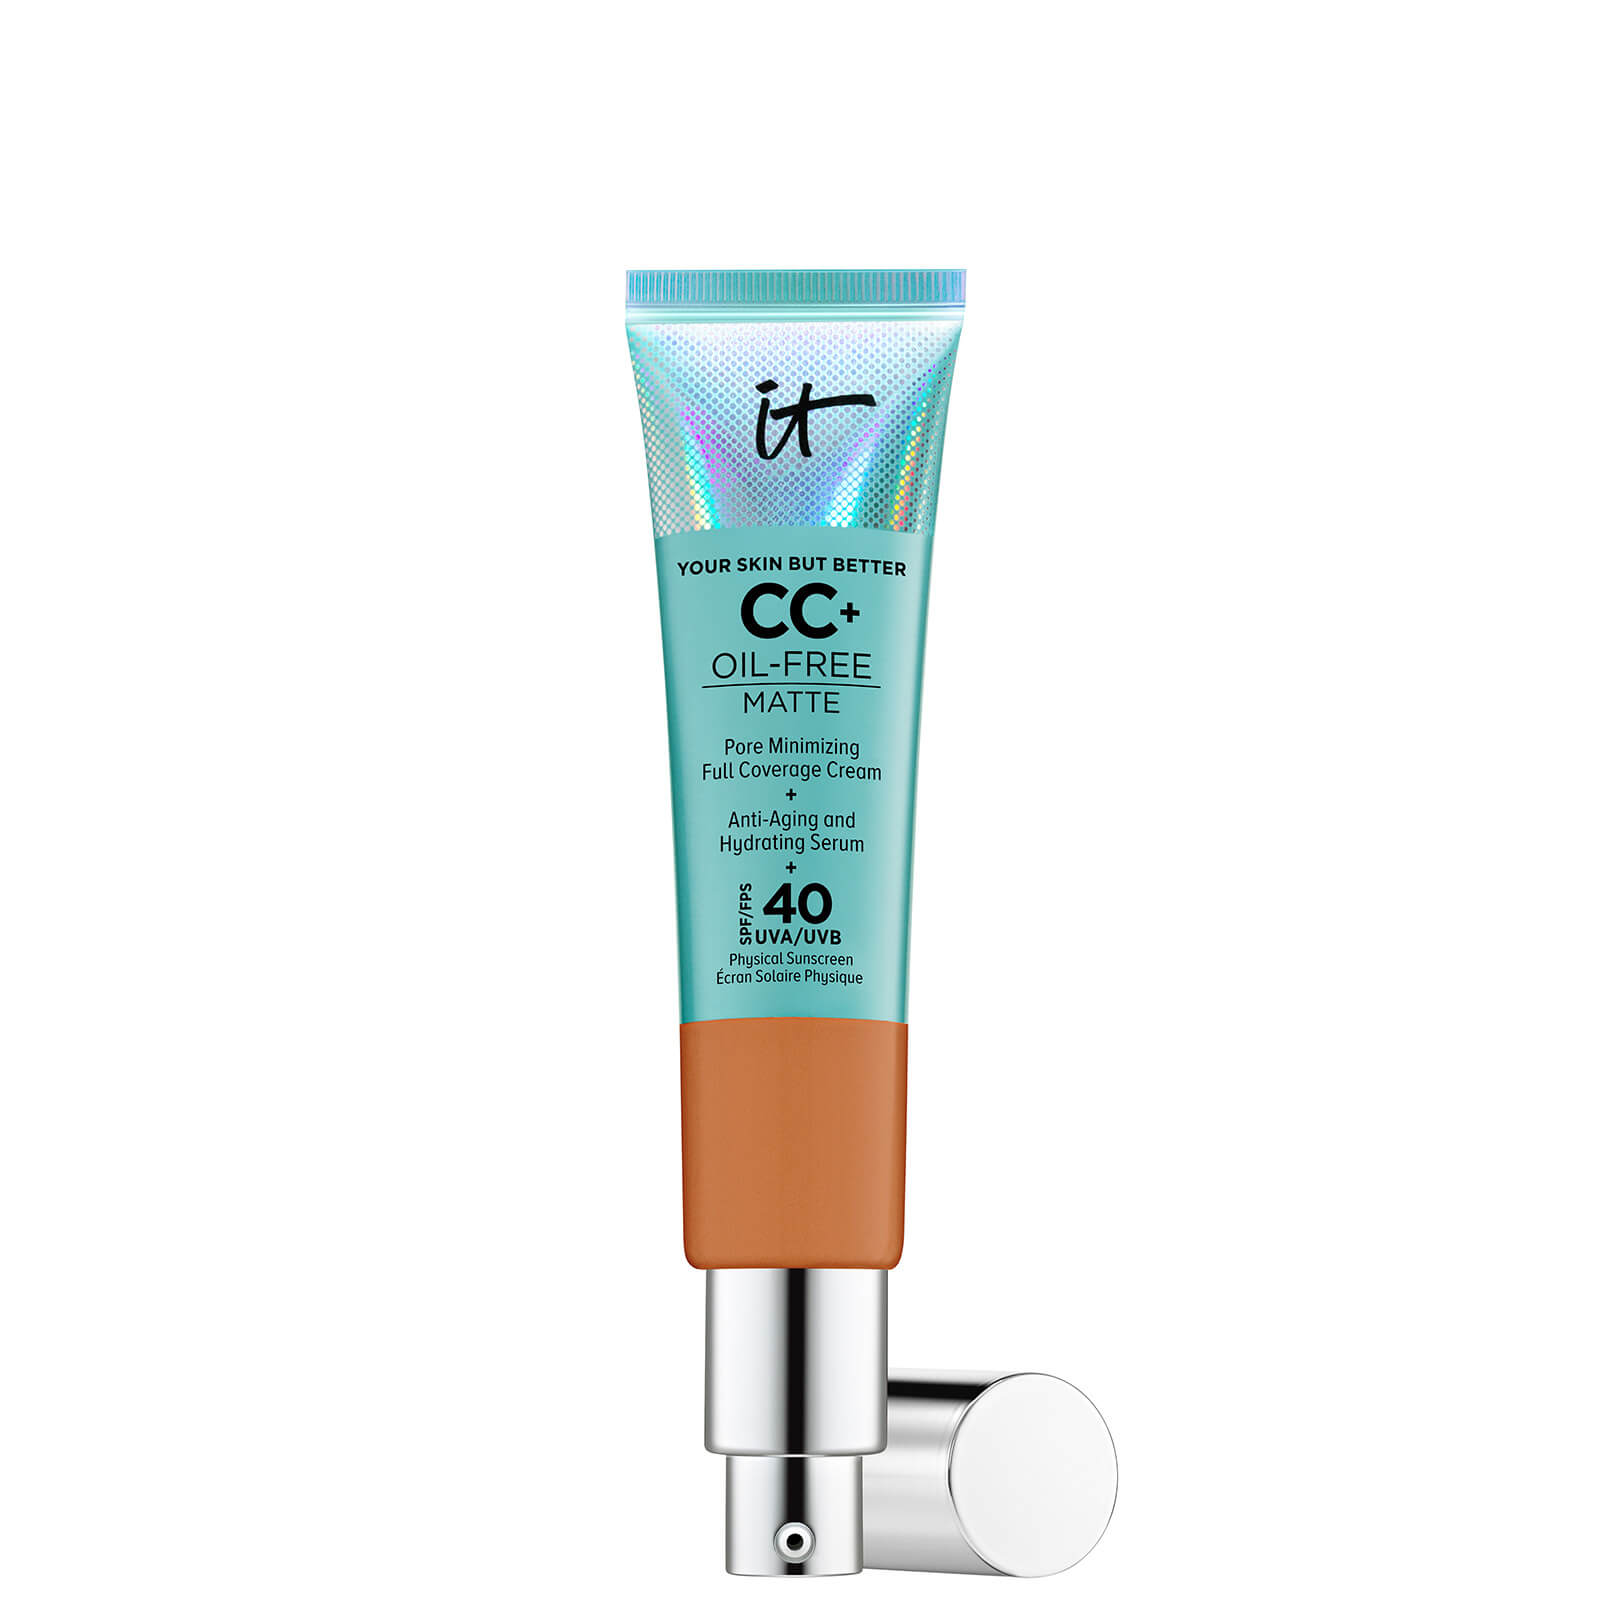 Купить IT Cosmetics Your Skin But Better CC+ Oil-Free Matte SPF40 32ml (Various Shades) - Rich